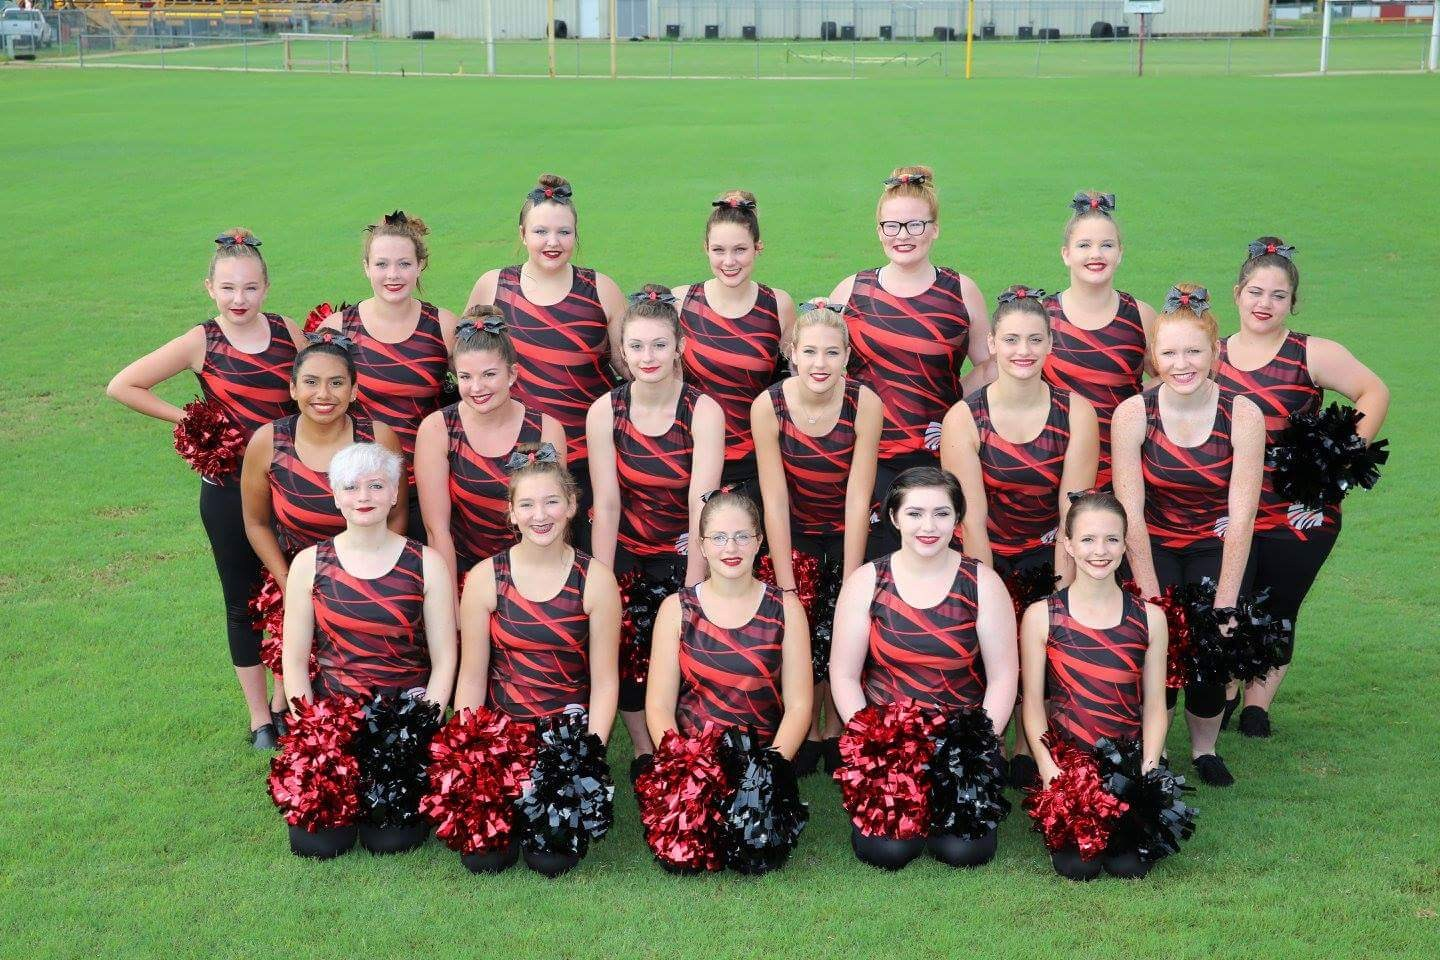 2017 Raiderettes ready for football season